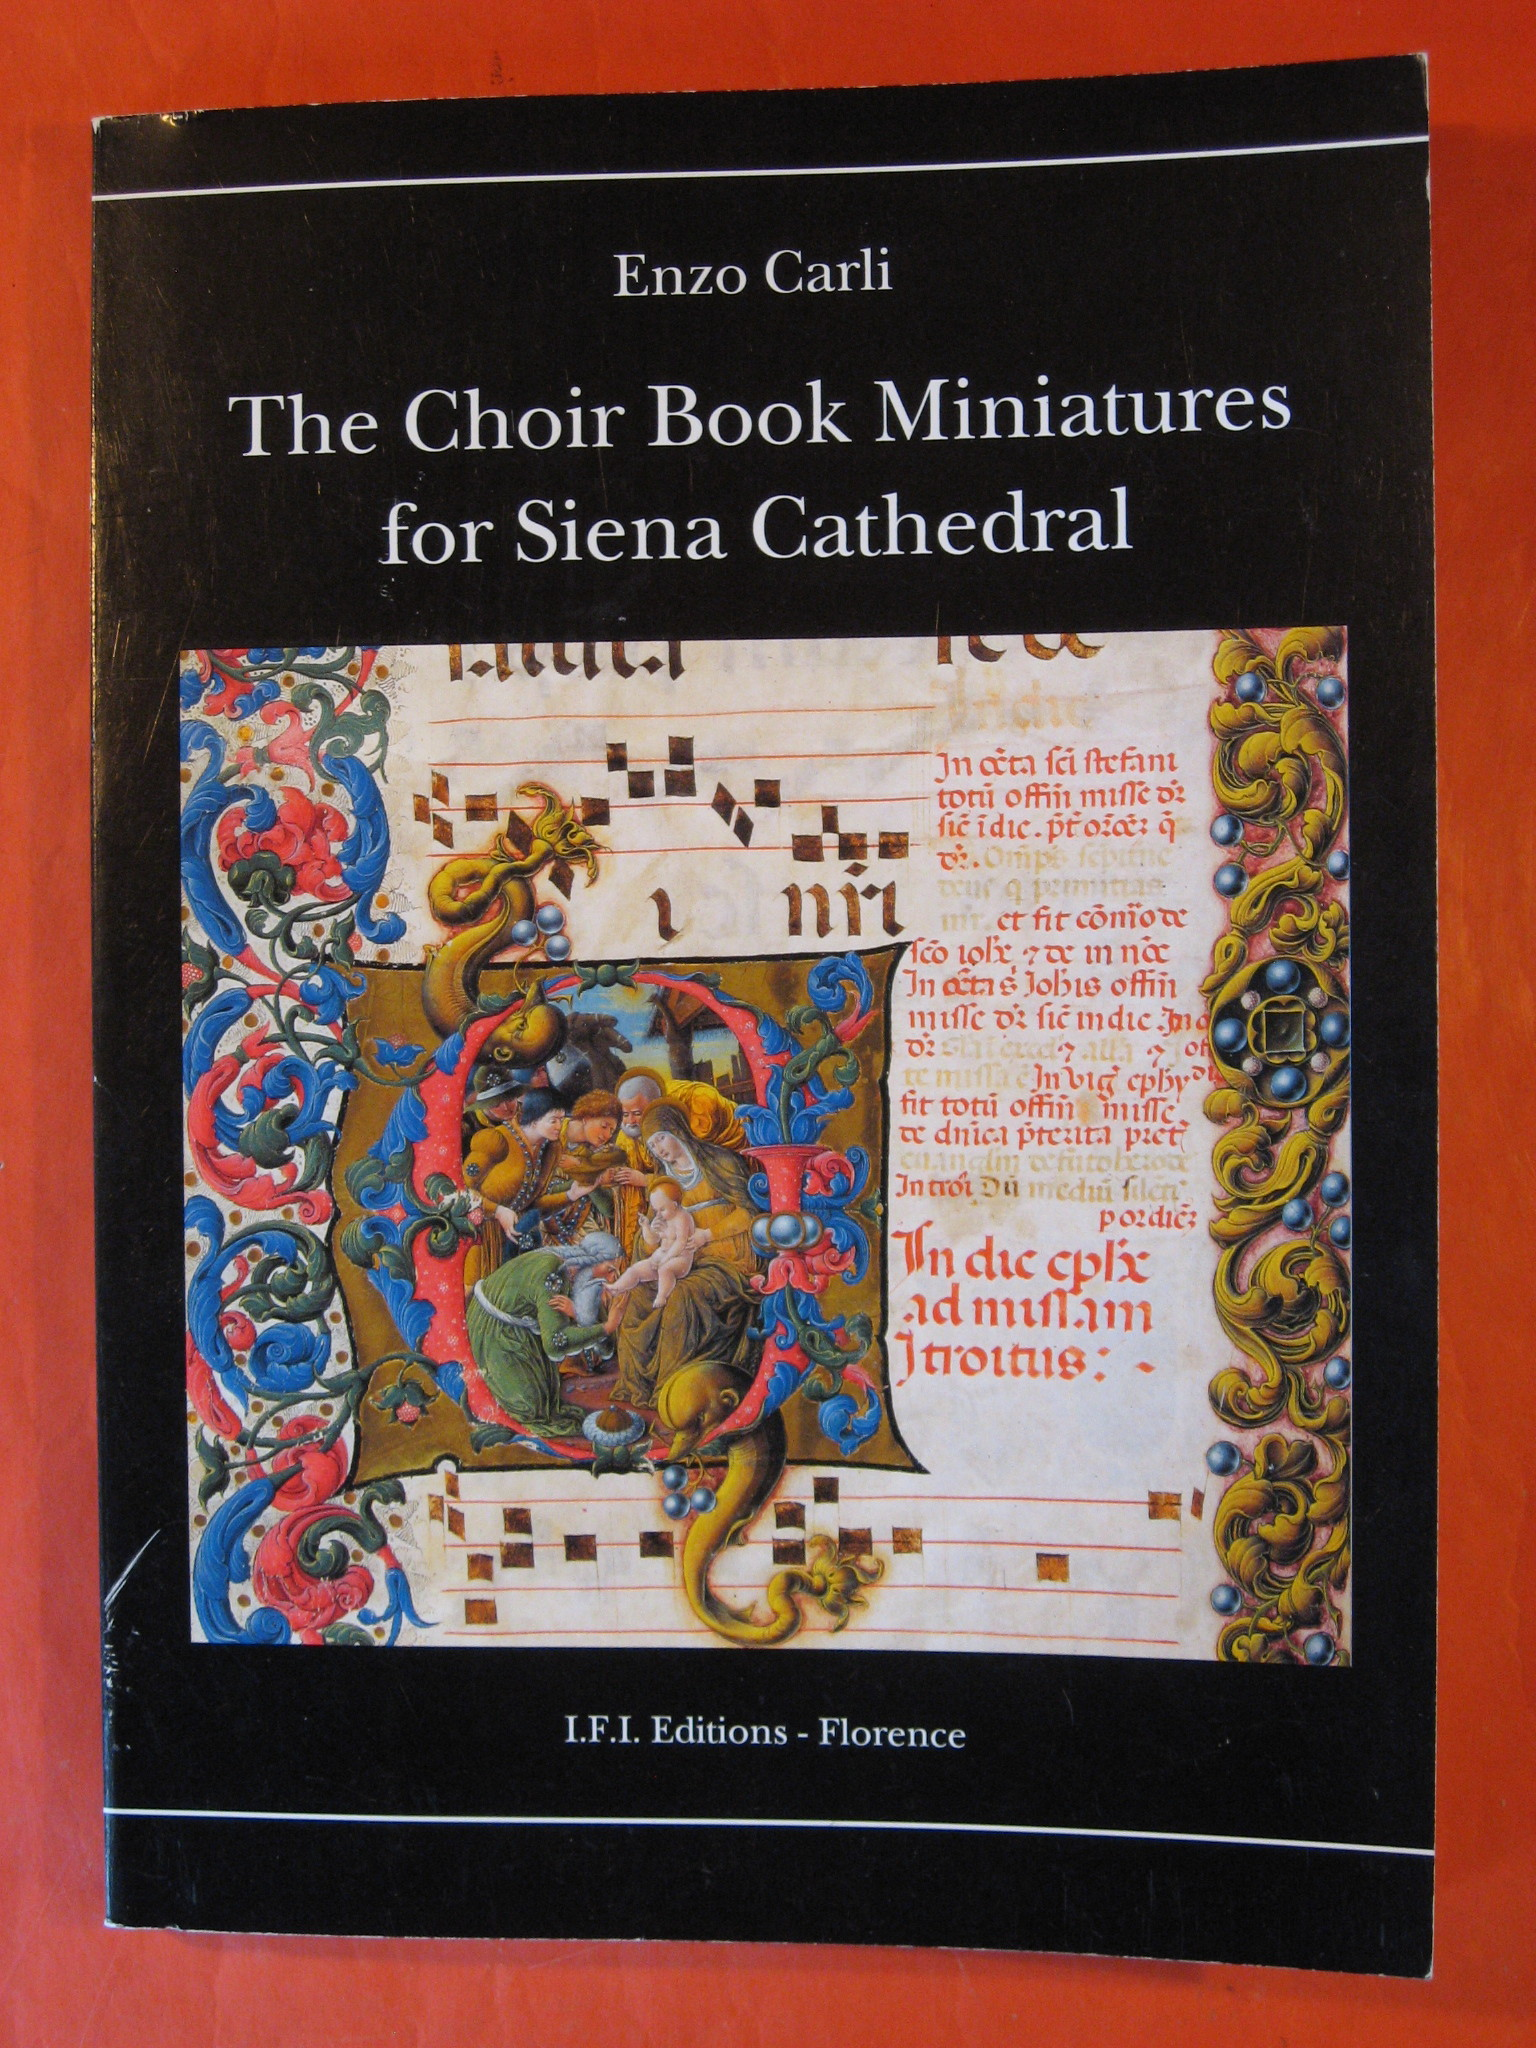 The Choir Book Miniatures for Siena Cathedral, Carli, Enzo